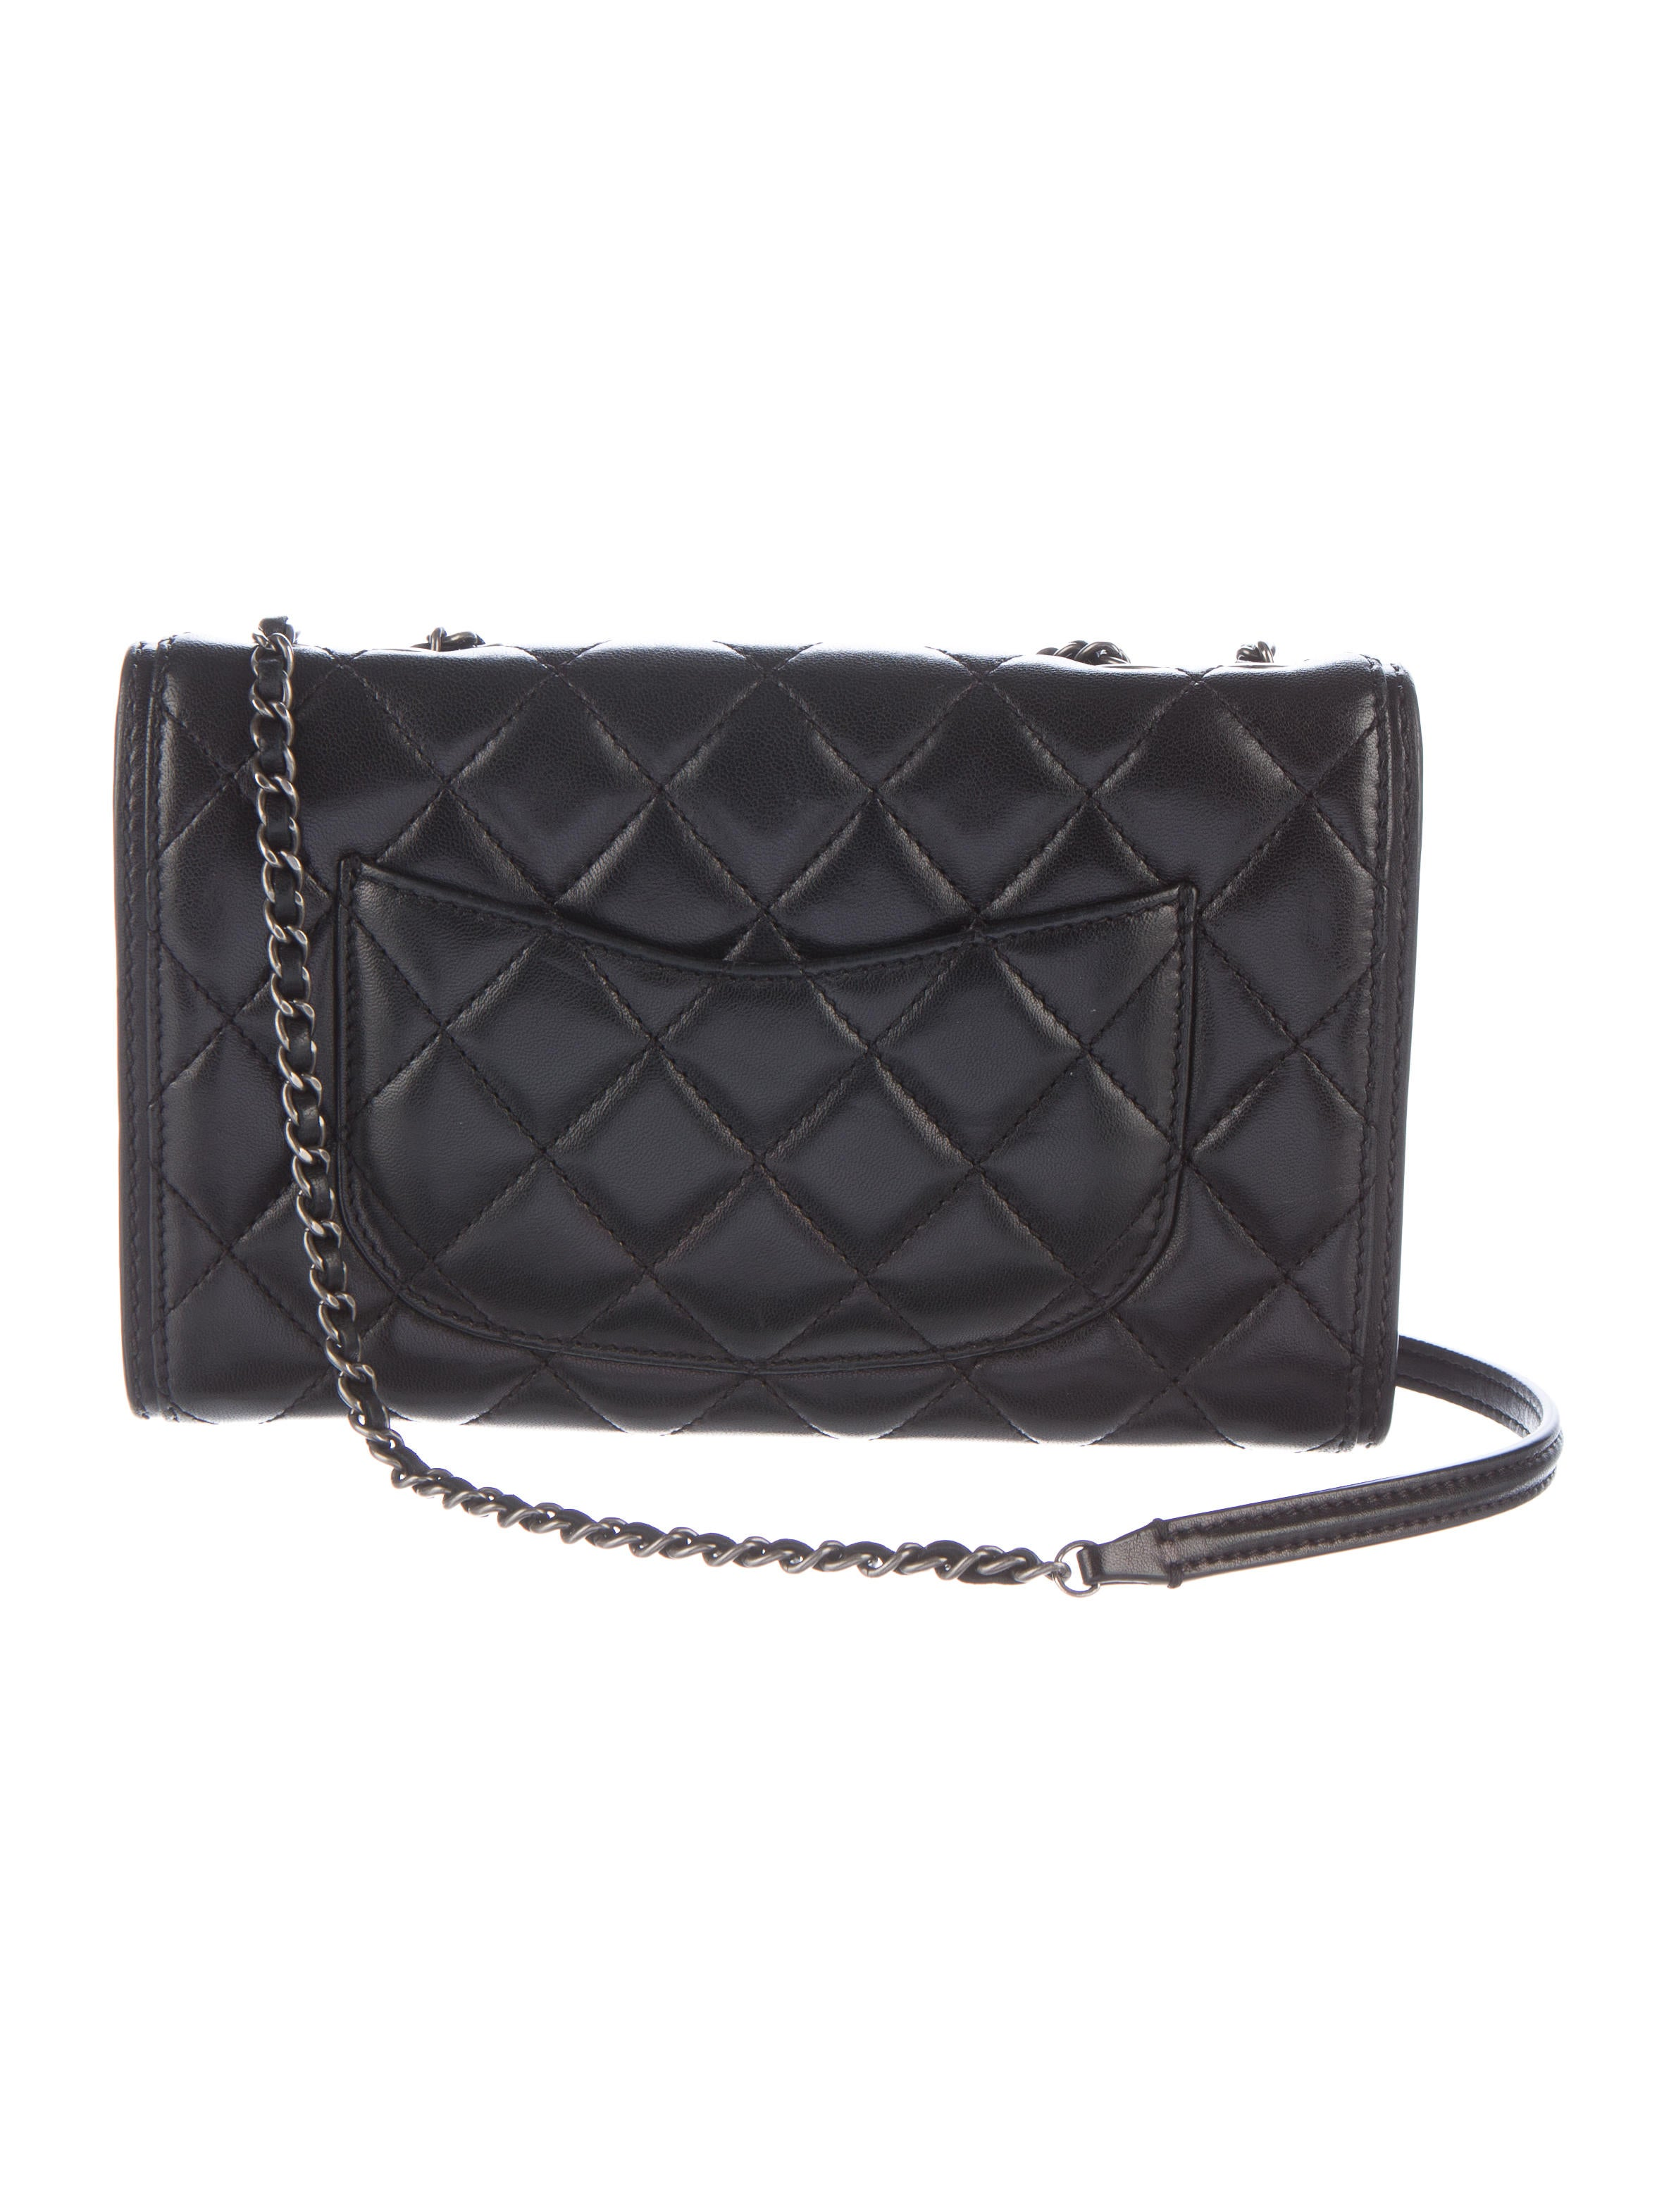 chanel 2014 lambskin shoulder bag handbags cha164476